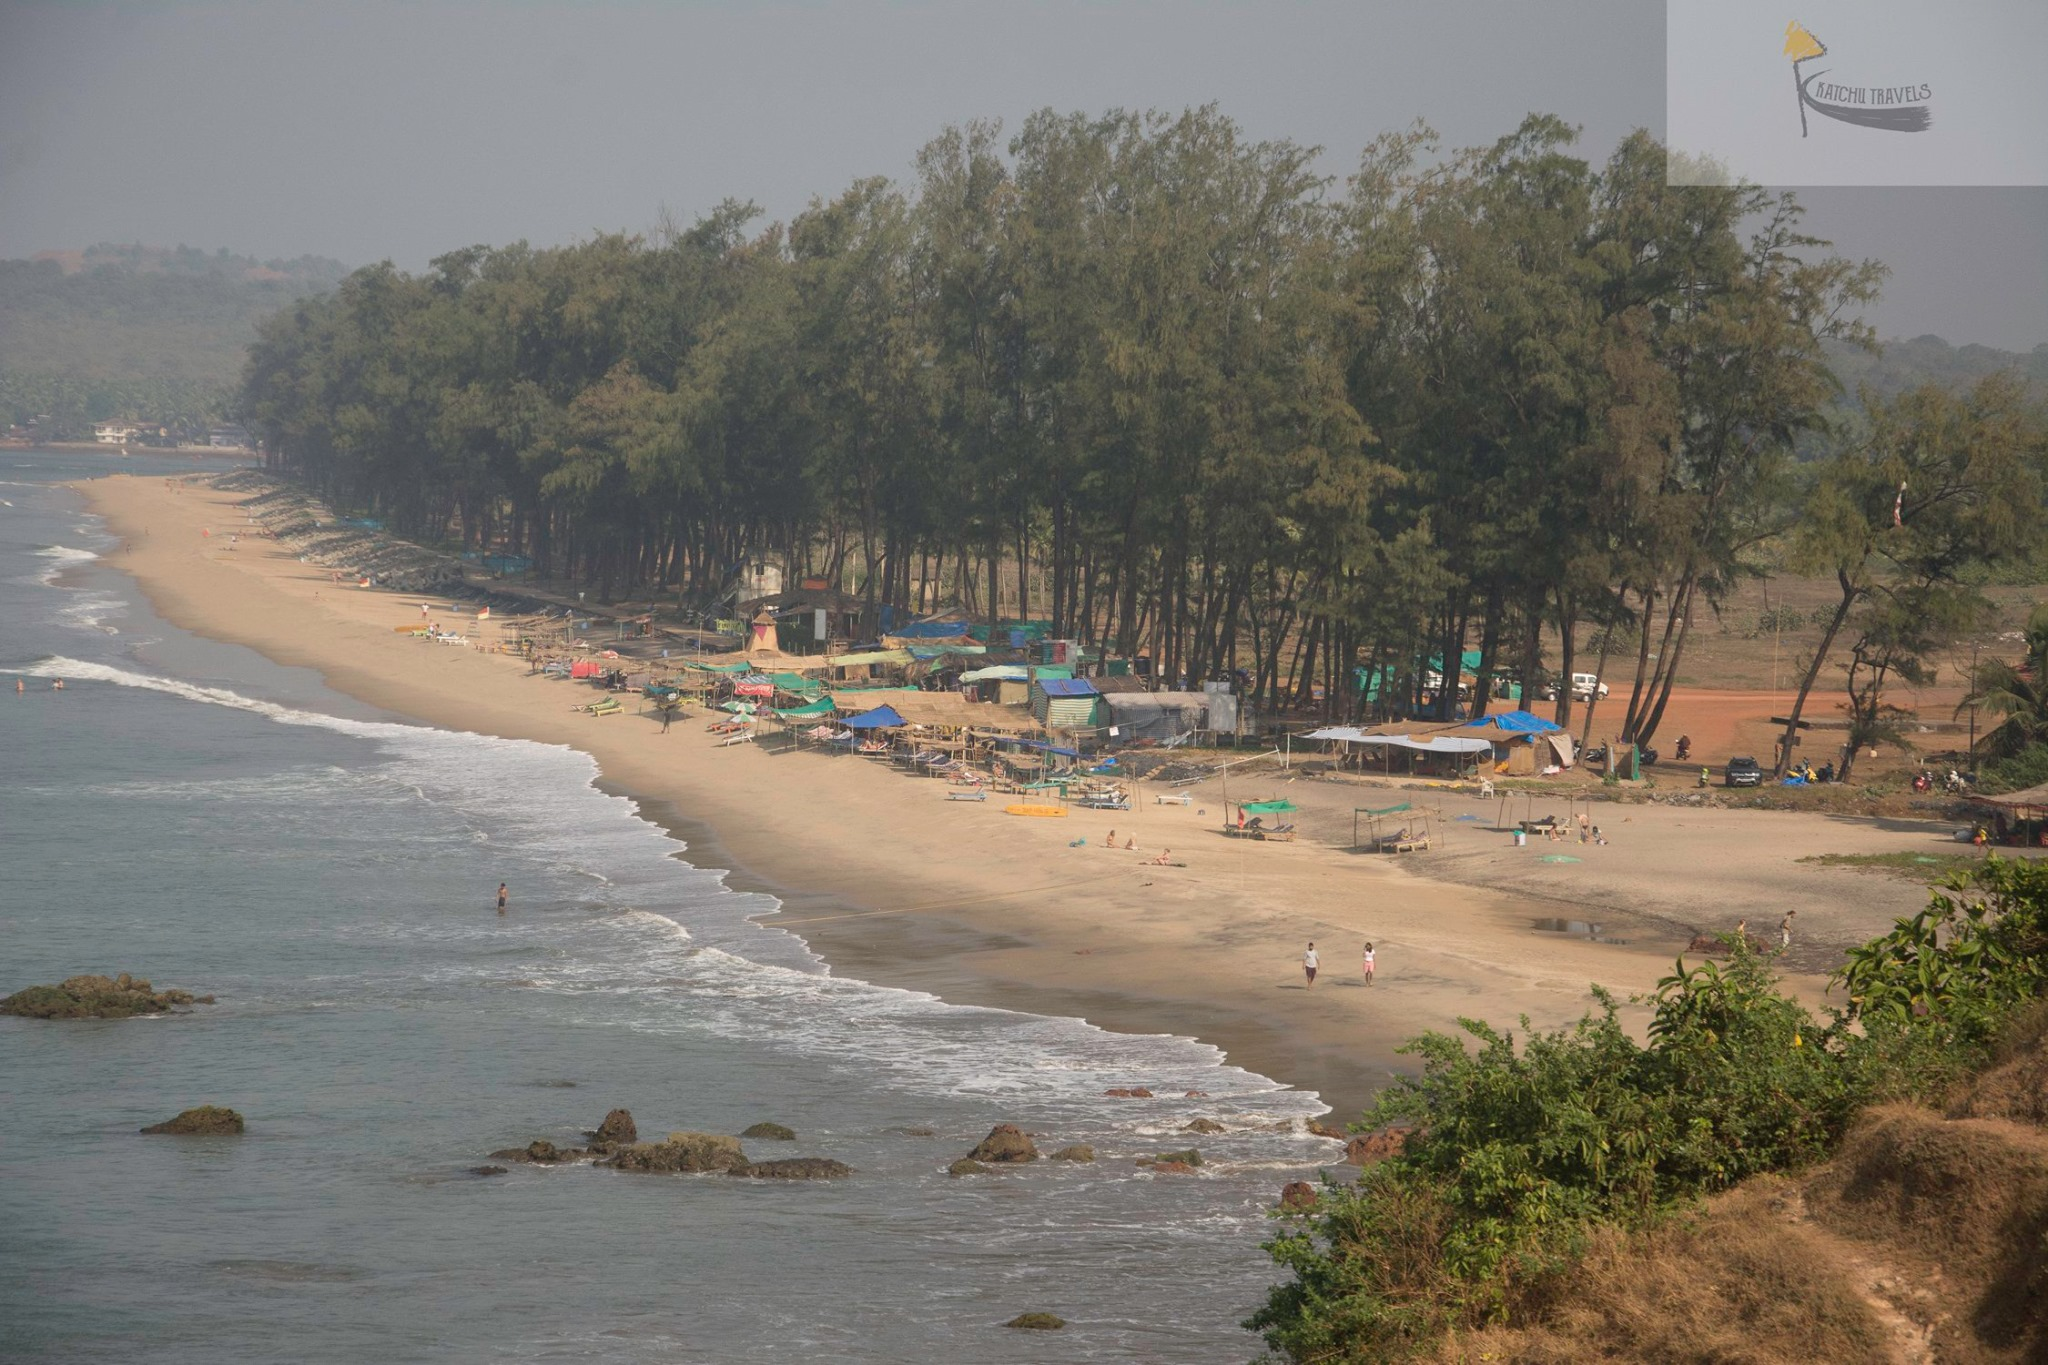 View of Keri Beach in North Goa (Getting to Querim Beach from Calangute takes 60 mins to cover 32 kms)